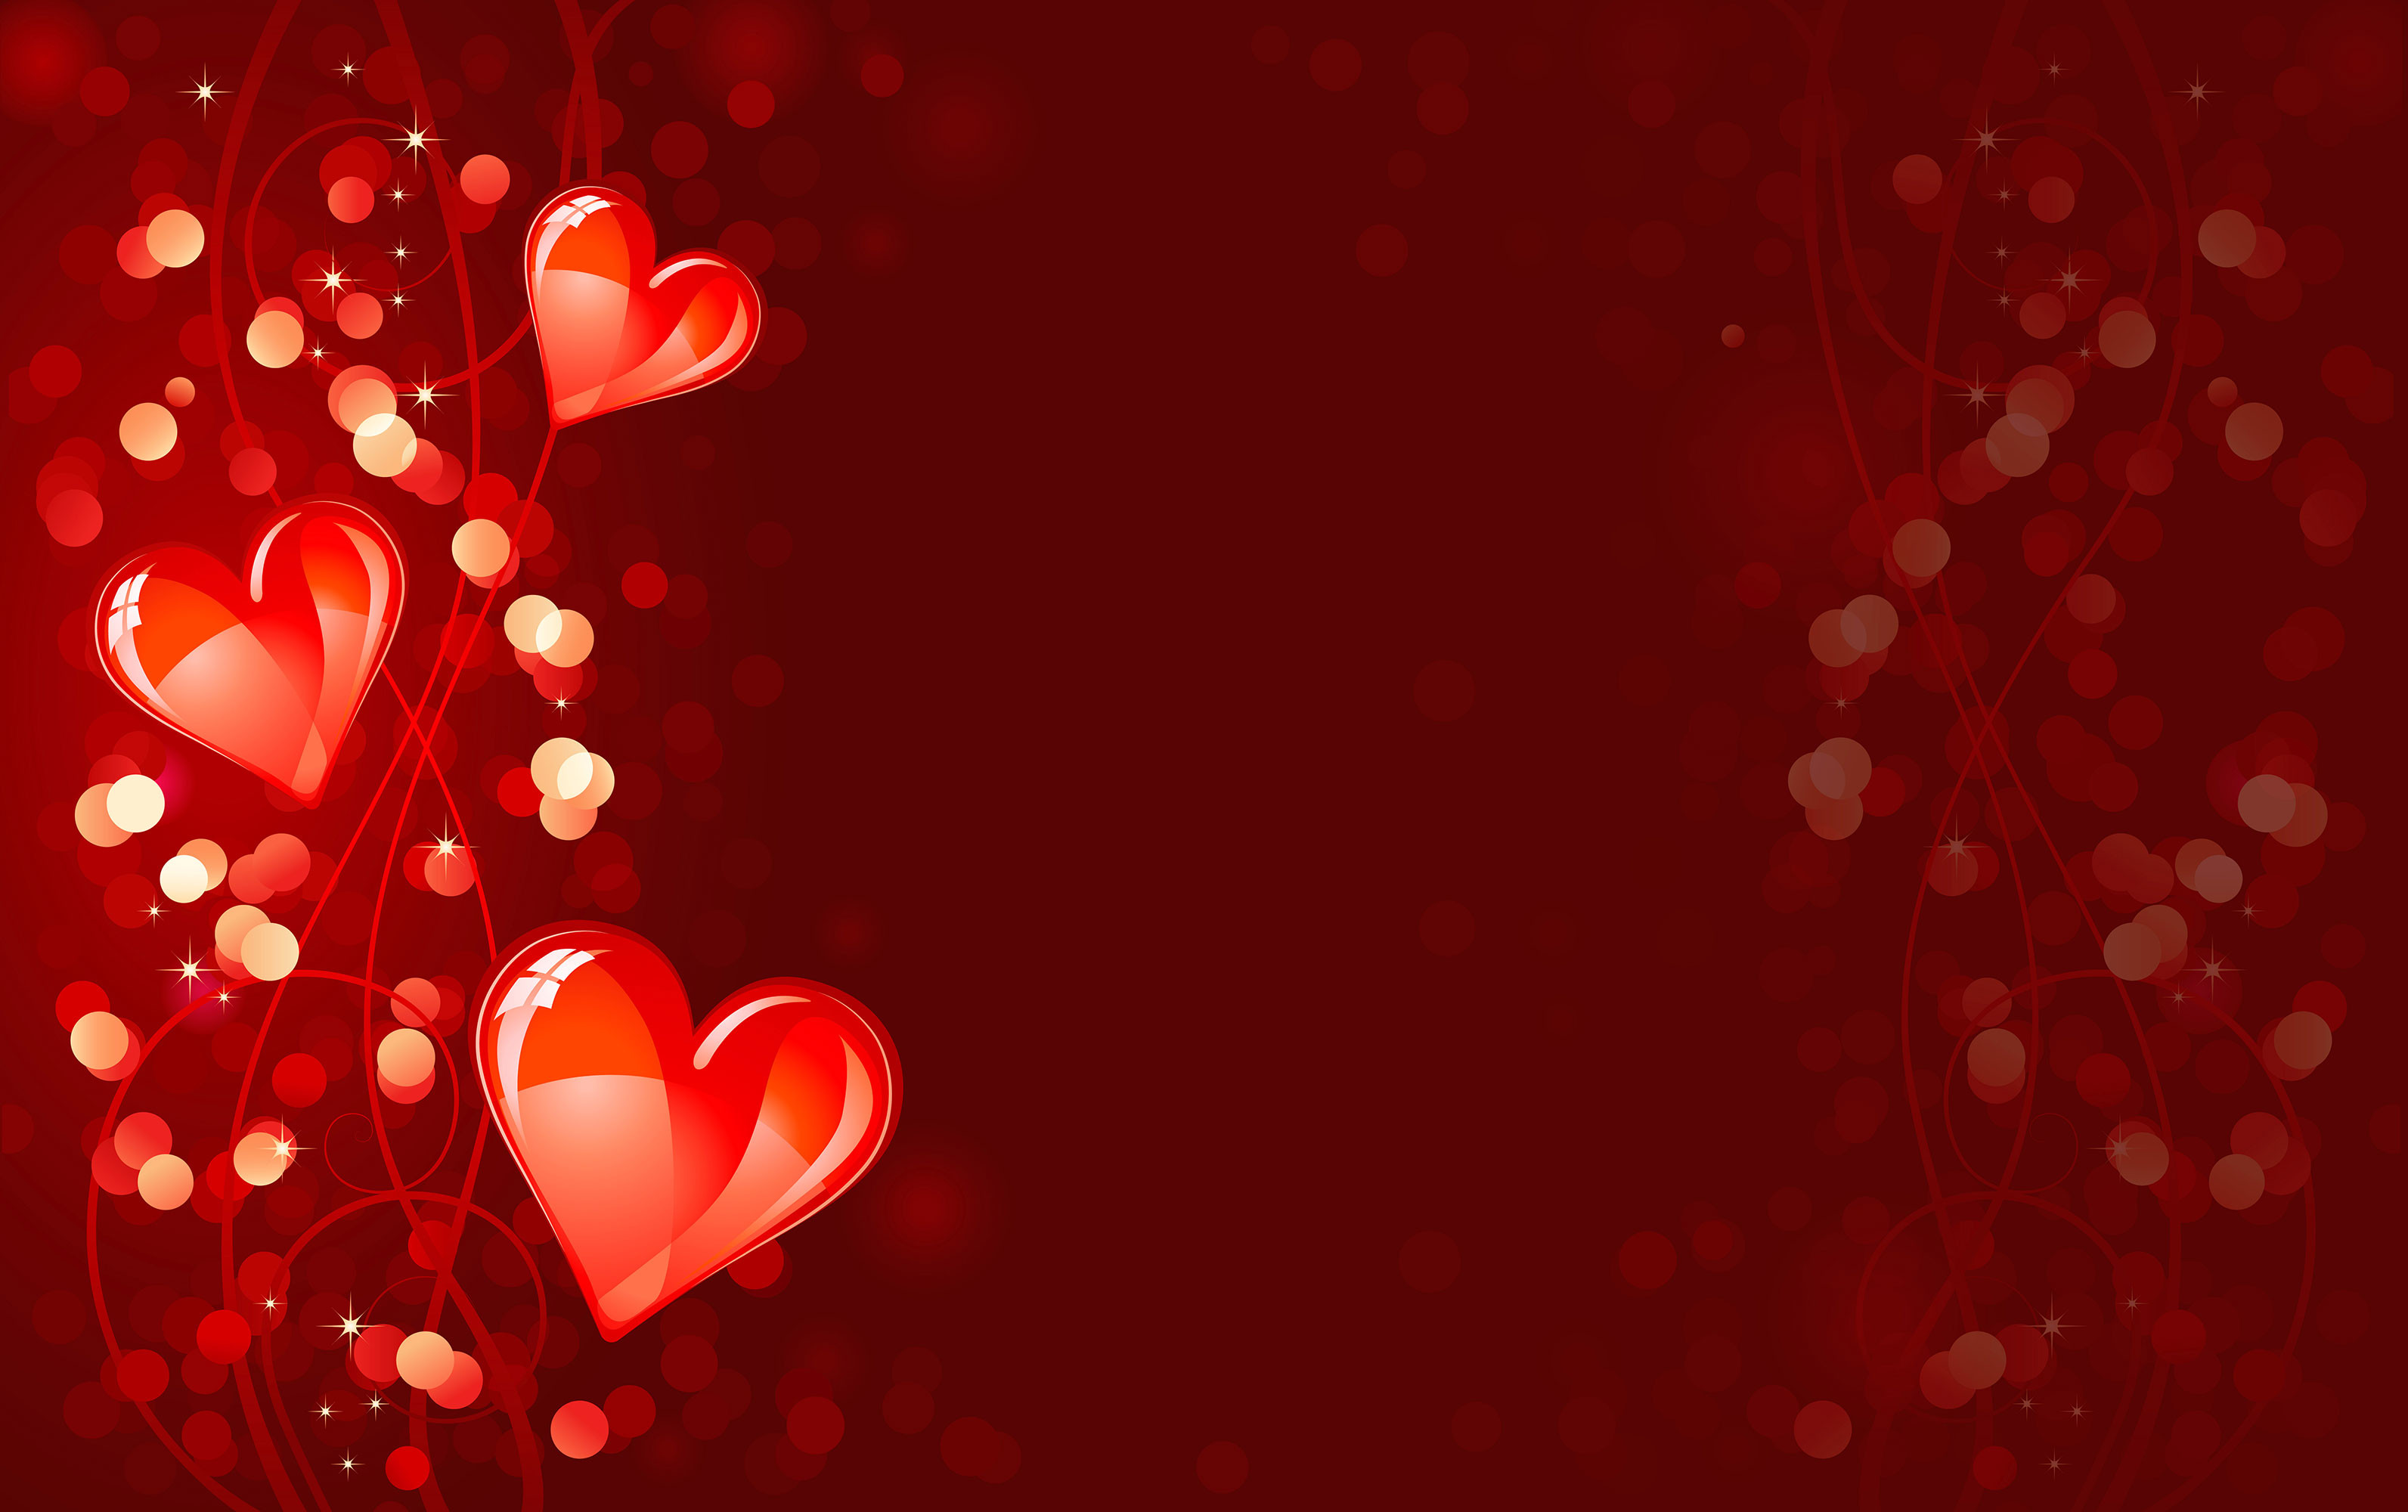 Valentines Day Pagan Pictures Romantic